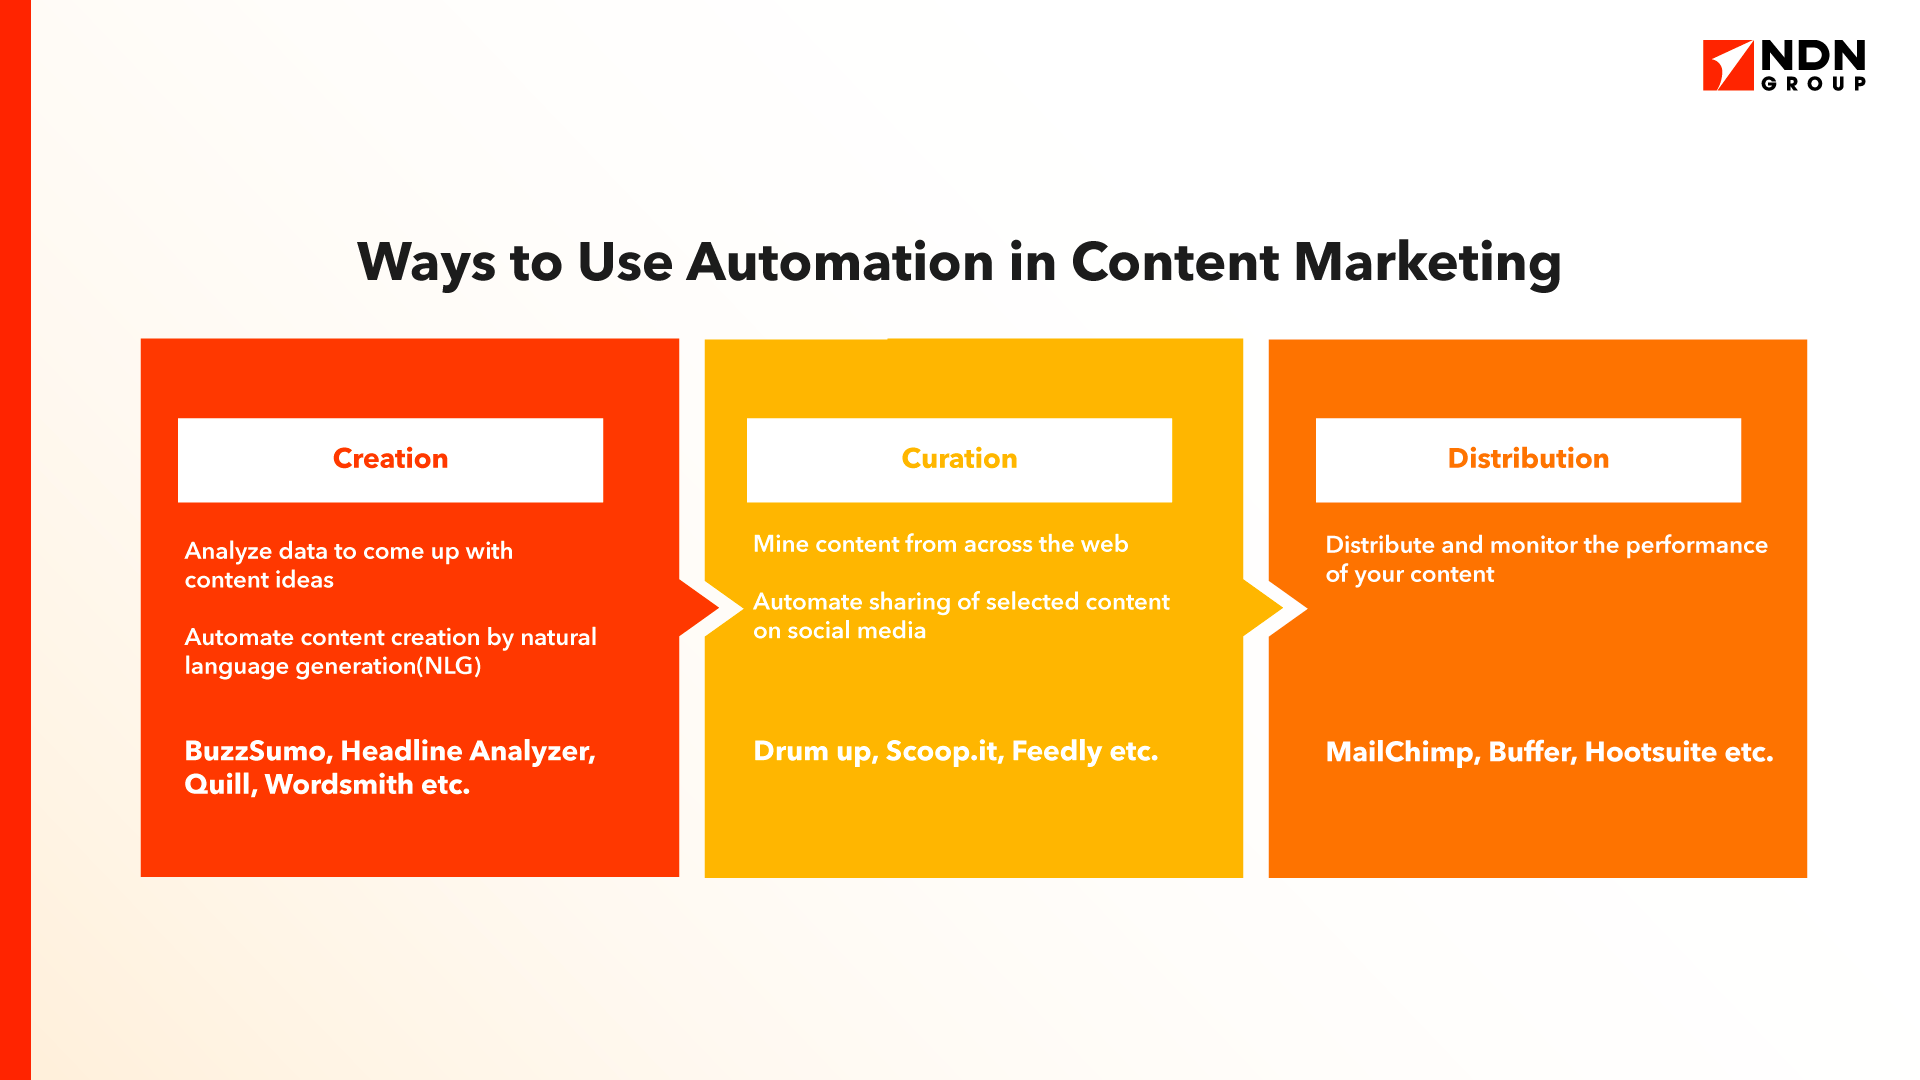 Ways to use automation in content marketing